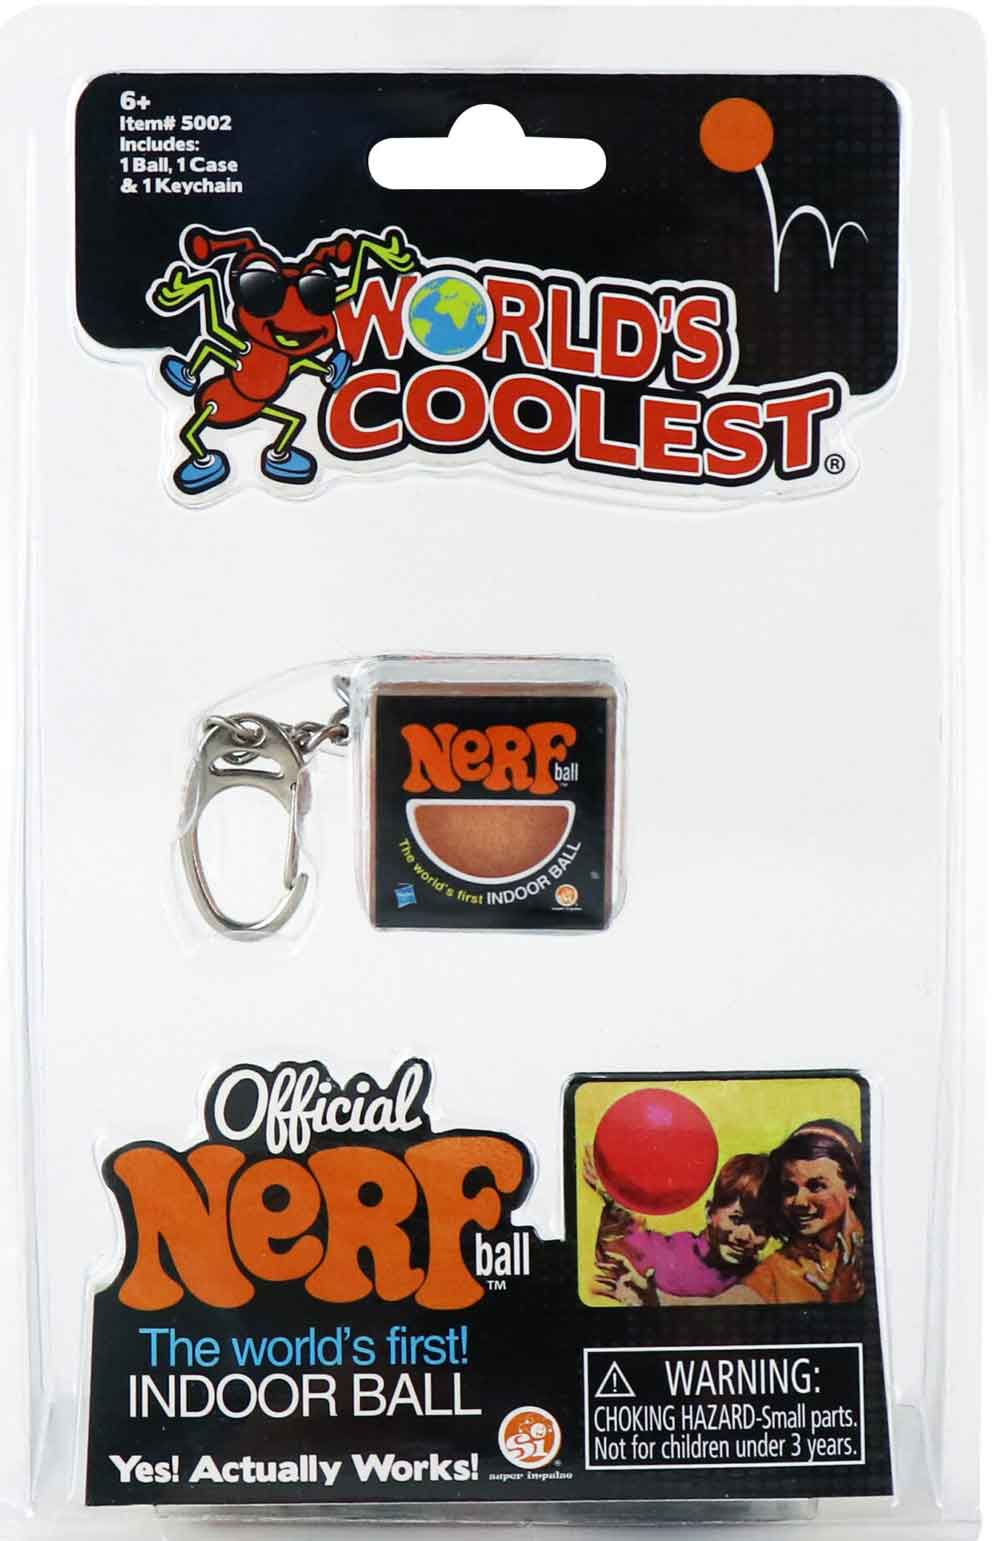 World's Coolest Official Nerf Ball